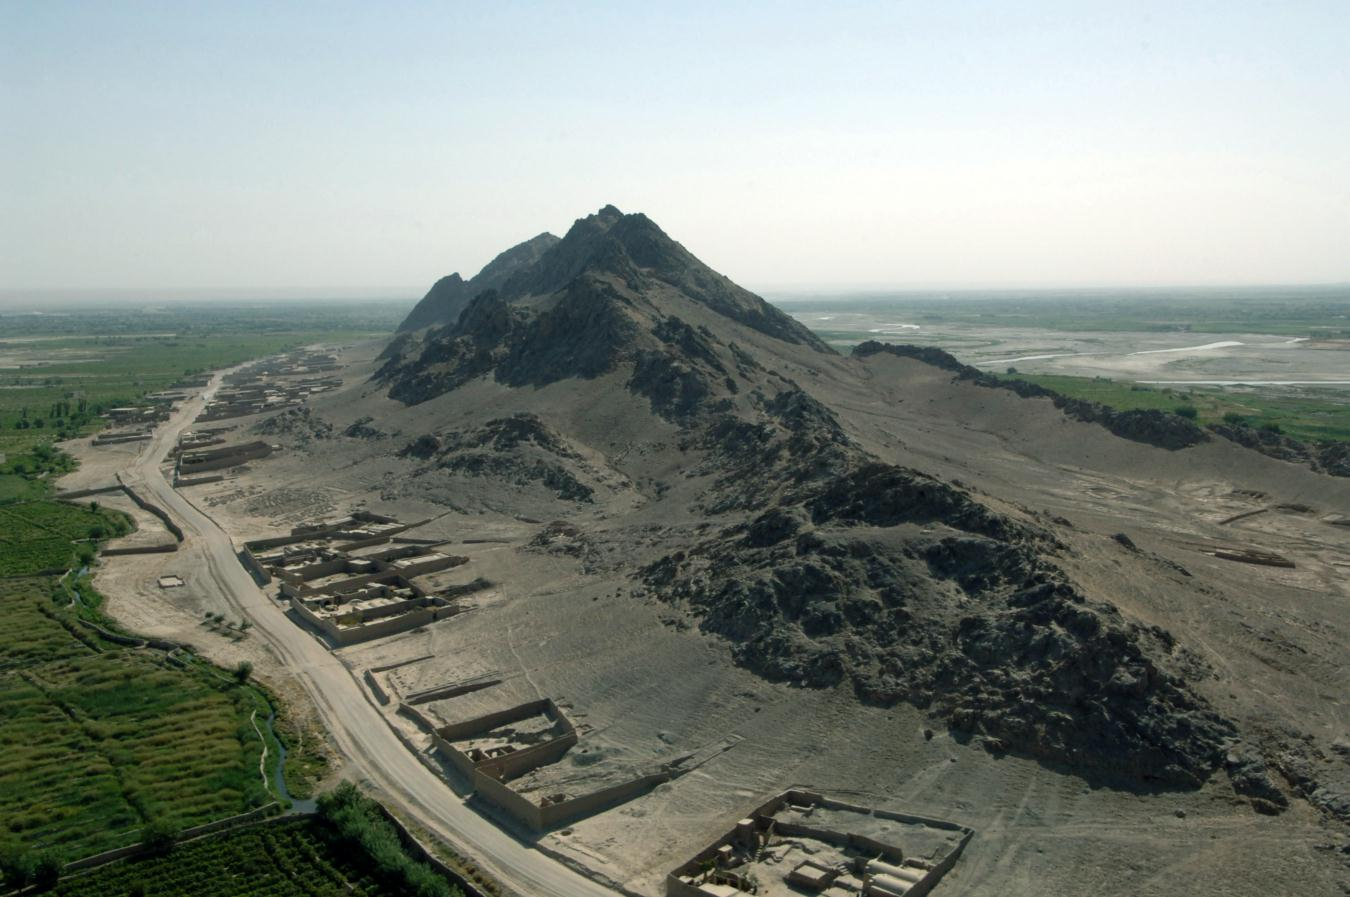 Three Mile Mountain, so called because of its distance from KAF.